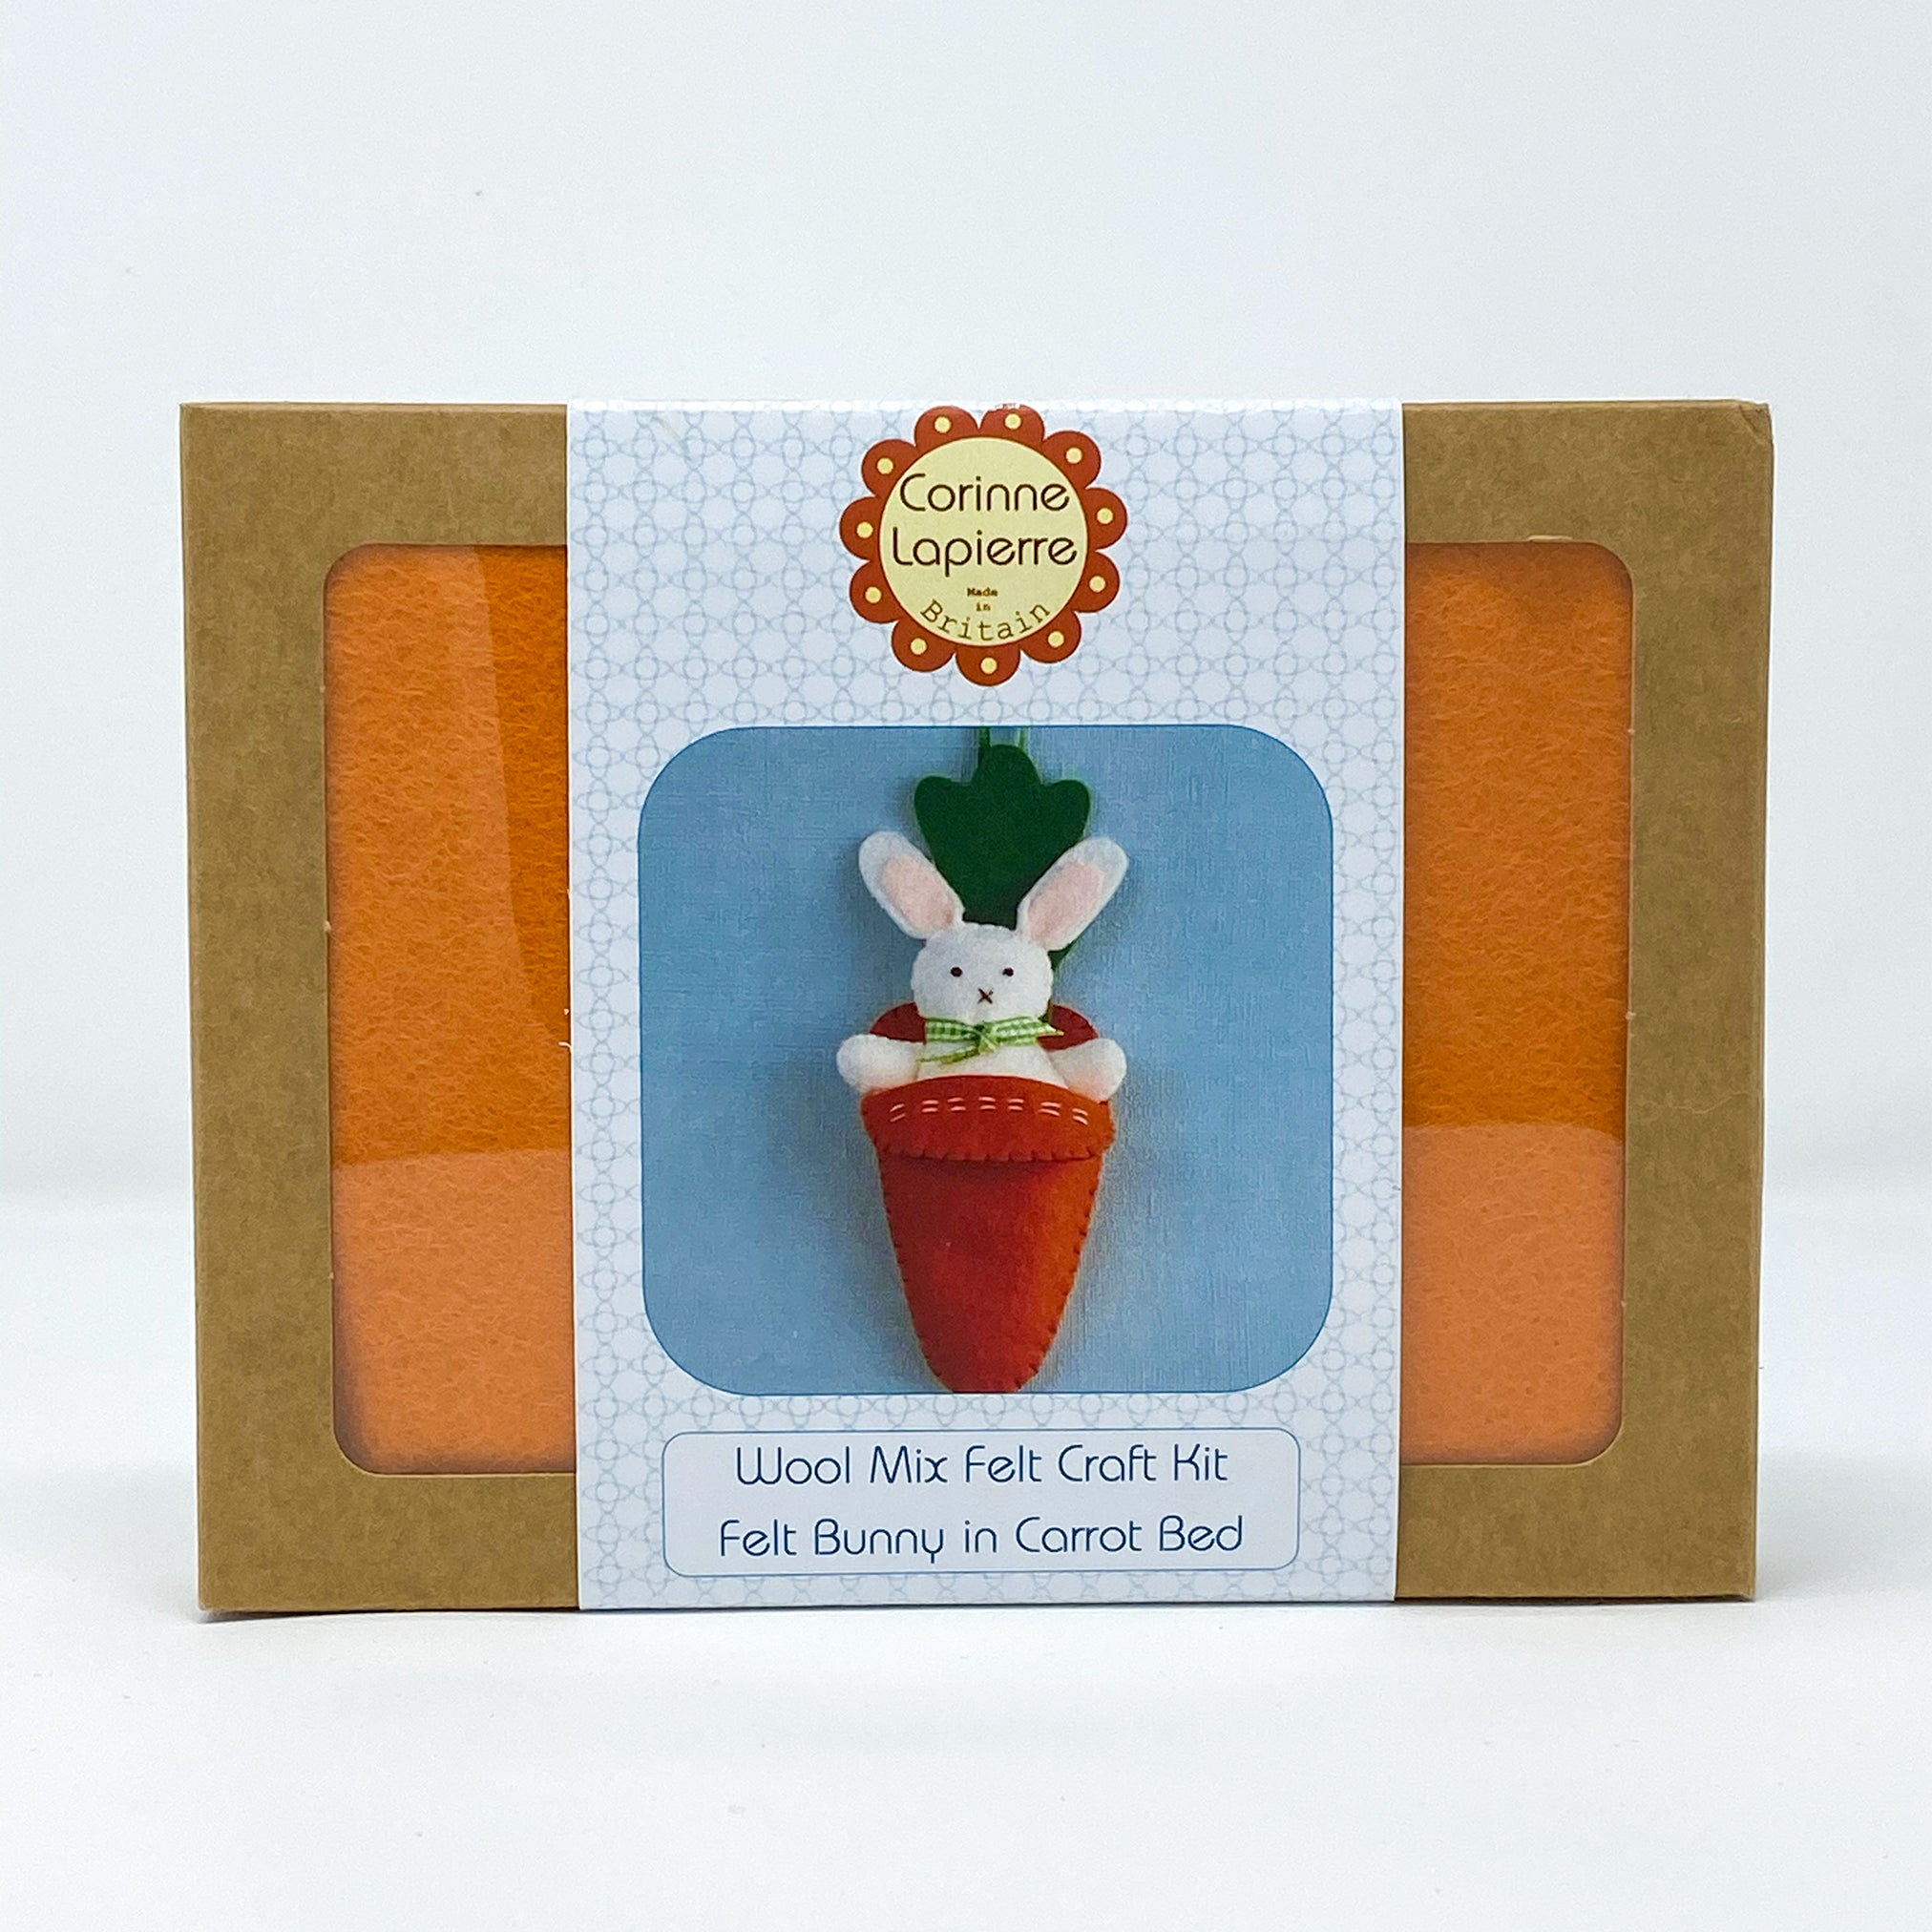 Wool Mix Felt Craft Kit Felt Bunny in Carrot Bed